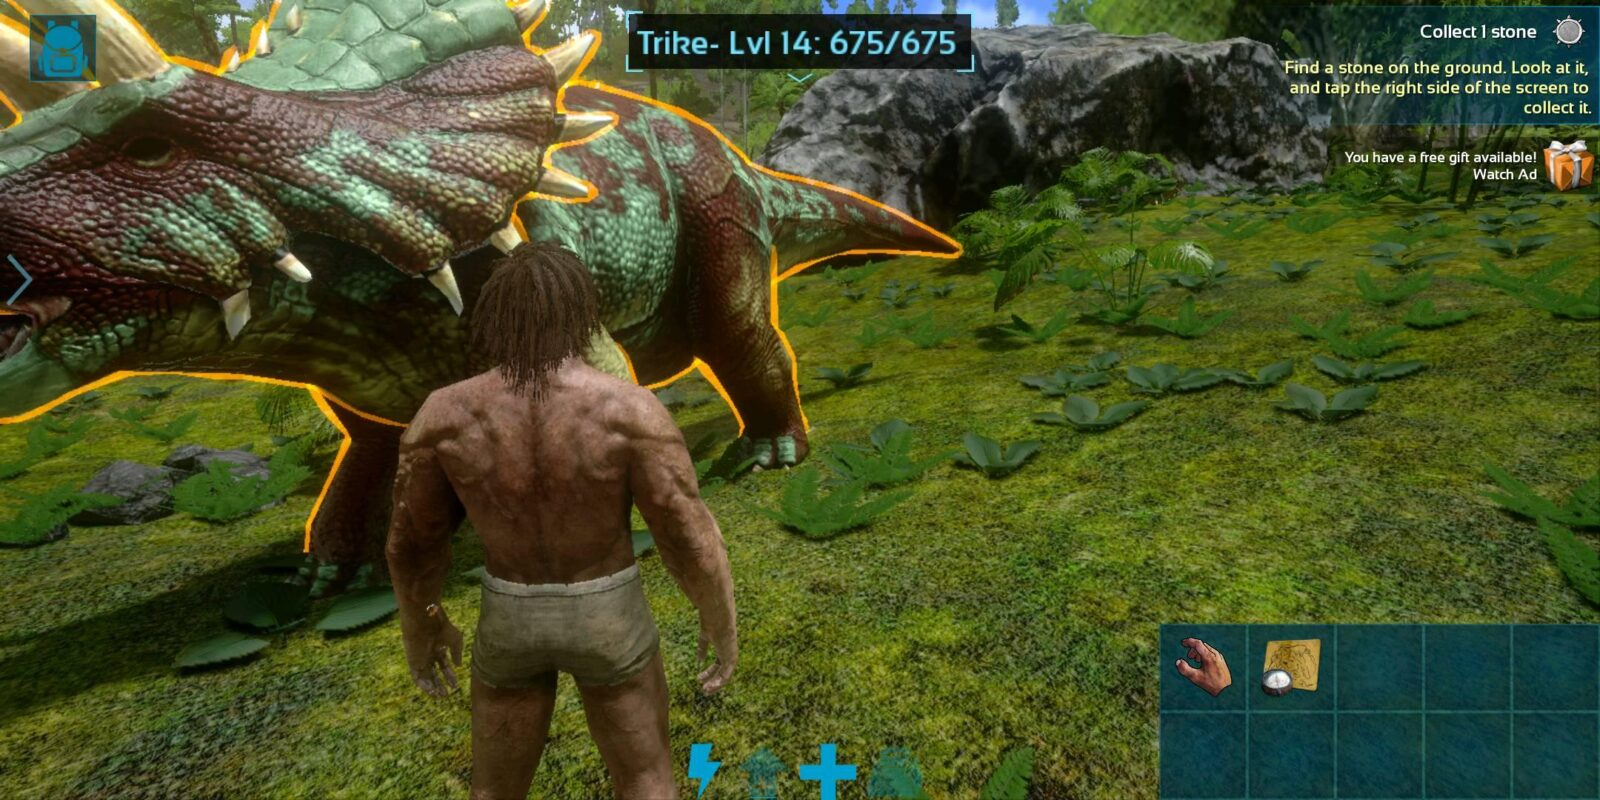 En iyi grafikli mobil oyunlar ARK: Survival Evolved